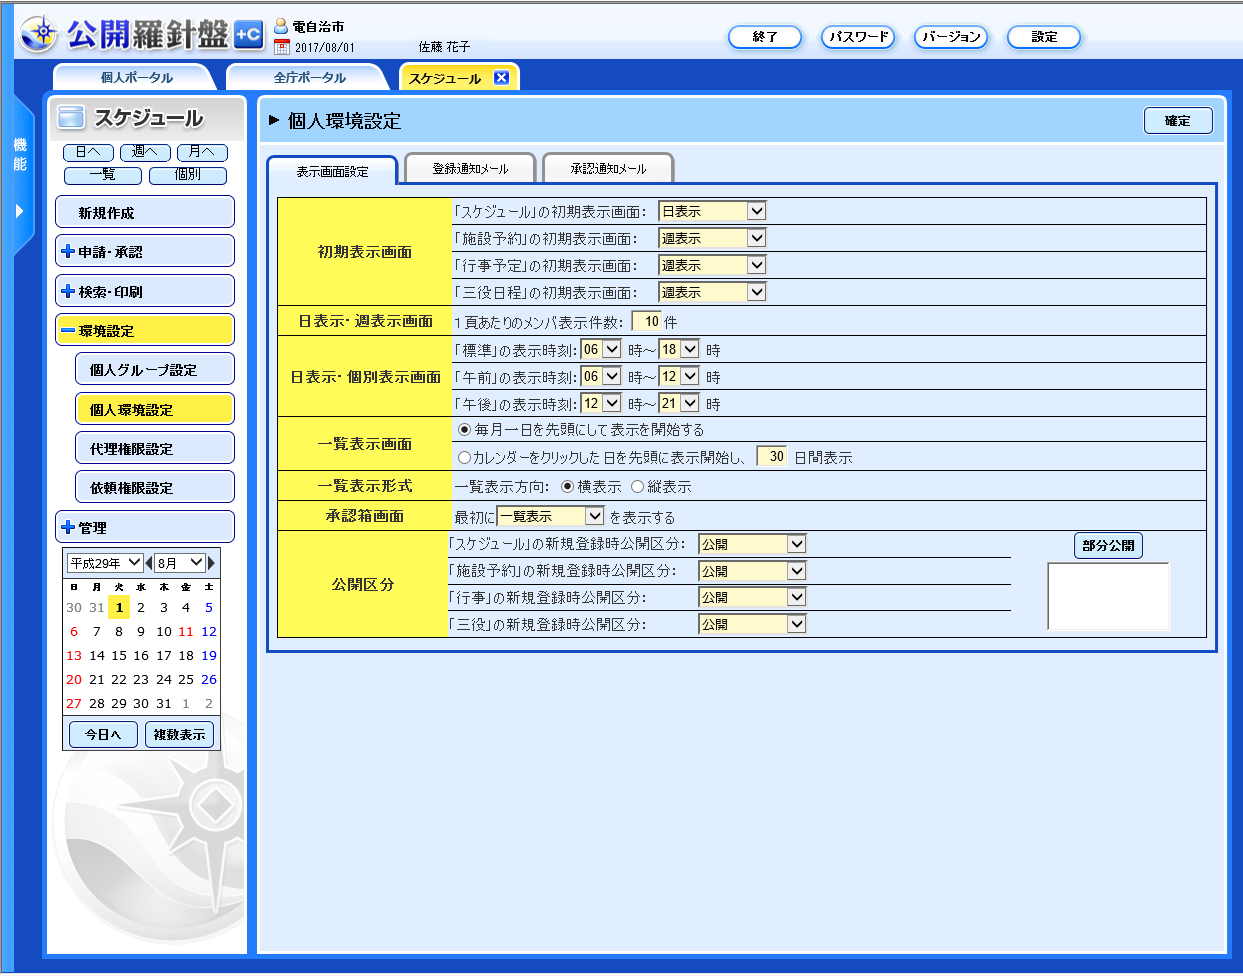 group-ware-image15.png